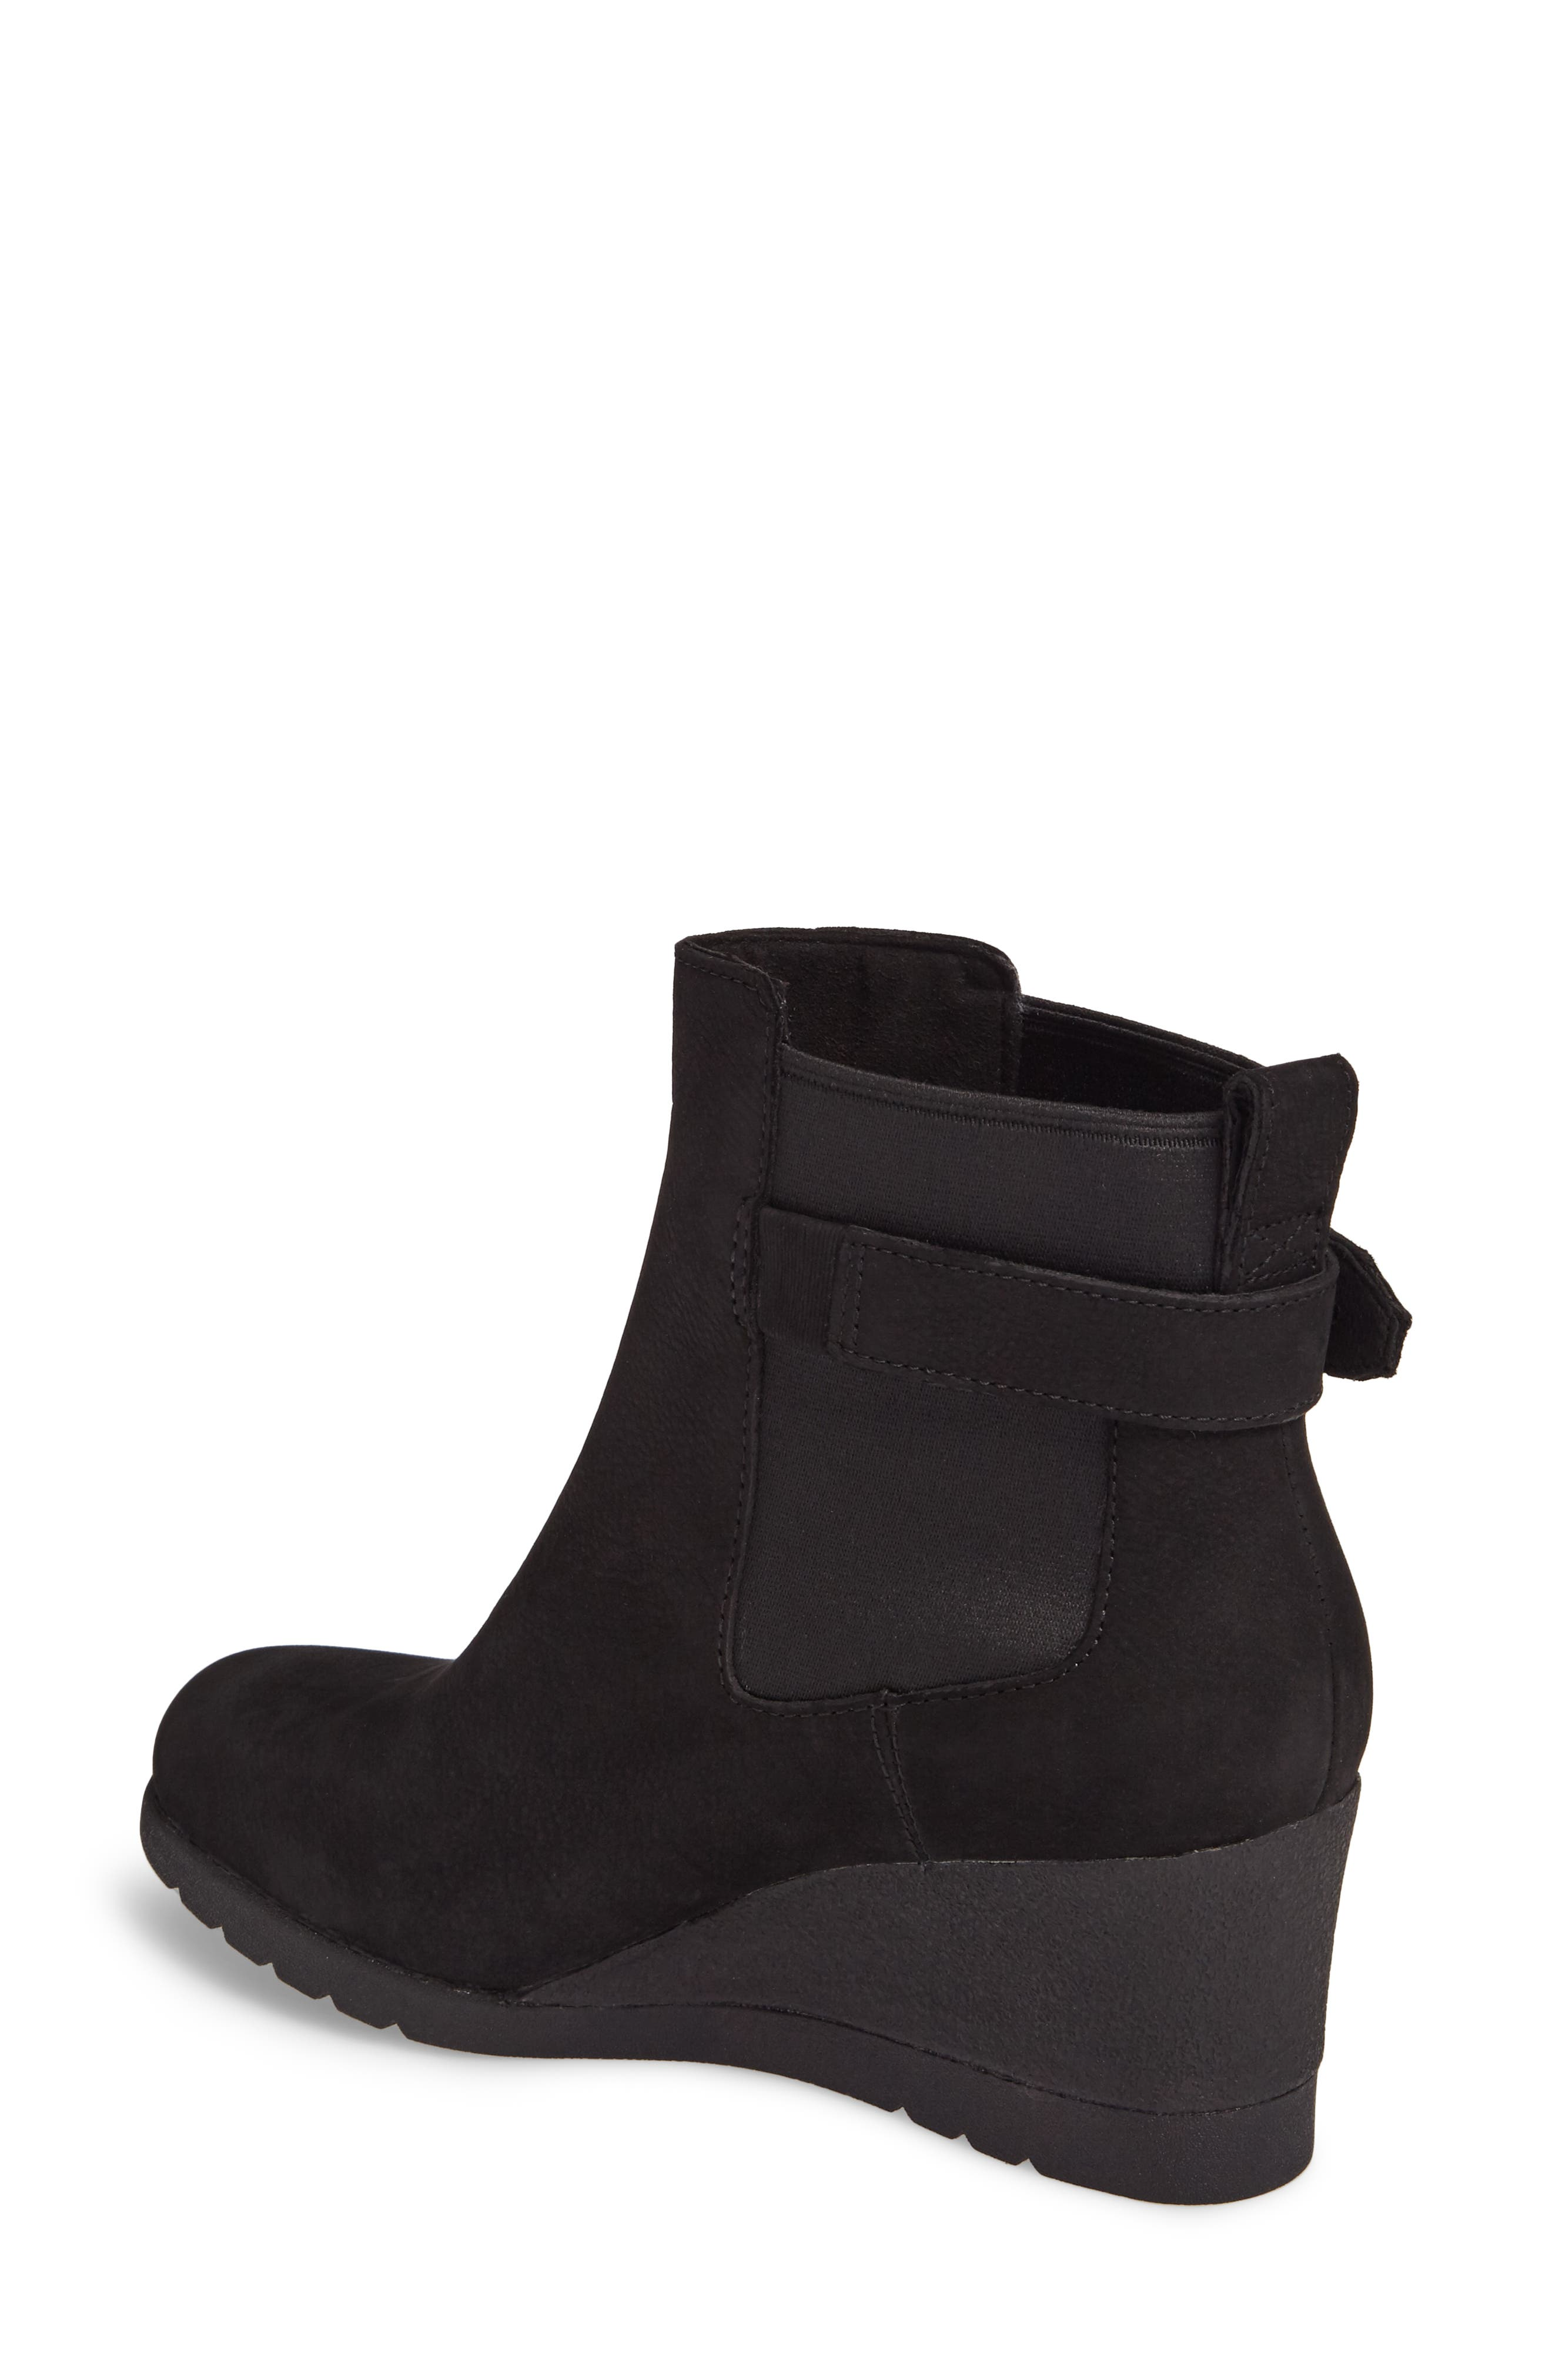 Waterproof Insulated Wedge Boot,                             Alternate thumbnail 2, color,                             BLACK LEATHER